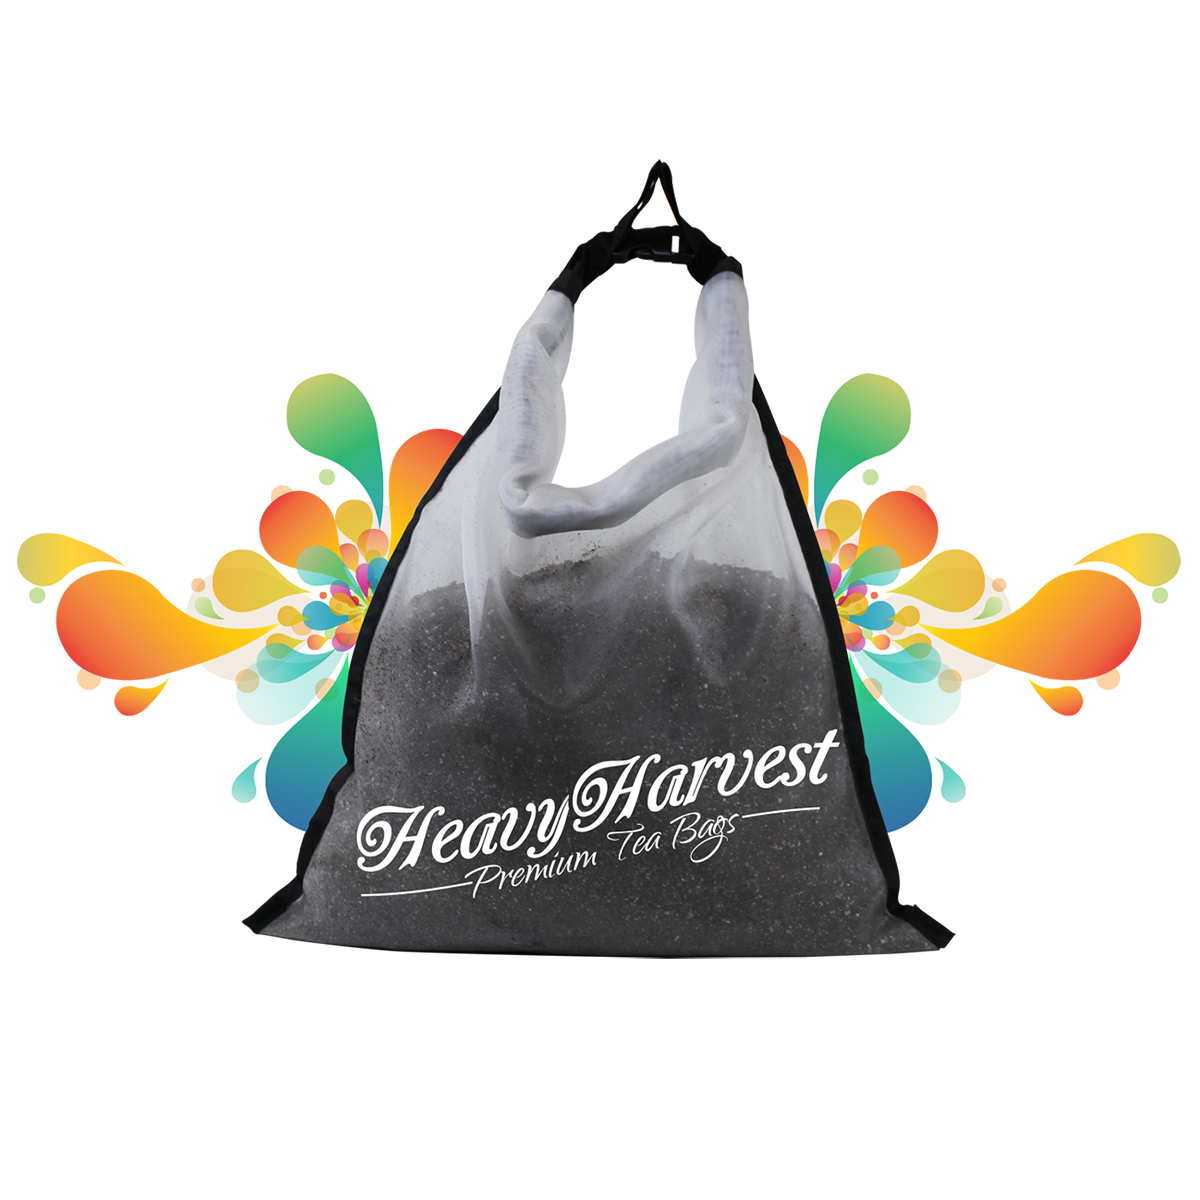 Heavy Harvest Tea Bag - Large